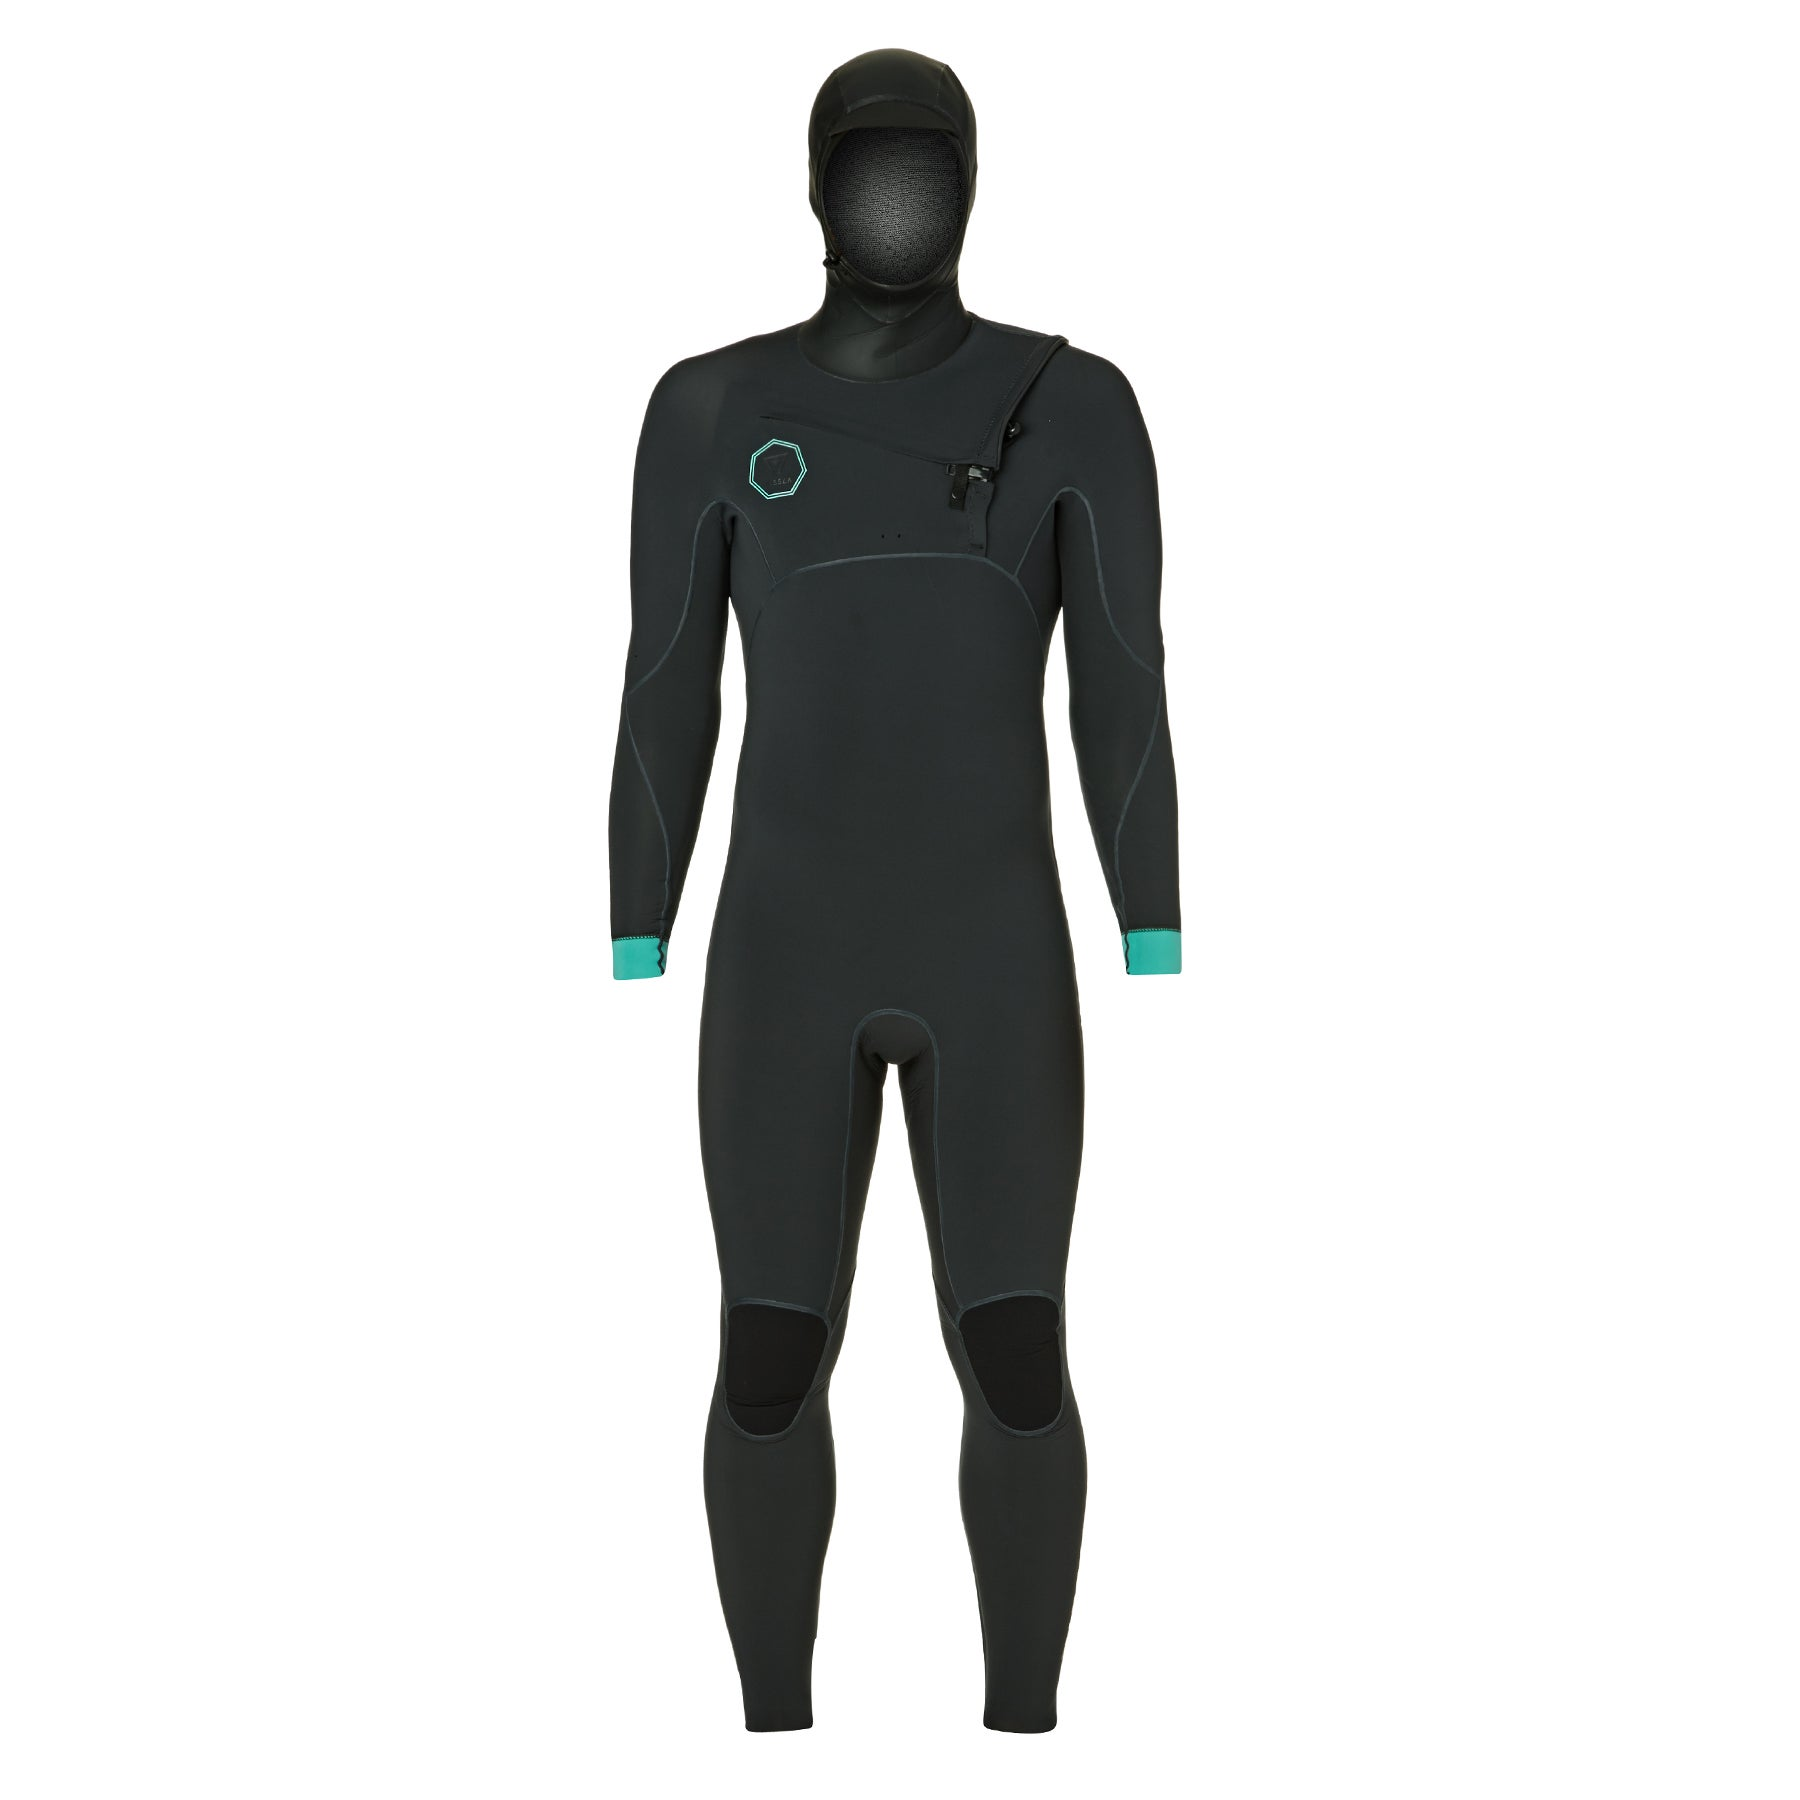 Vissla North Seas 5.5/4.5/3mm Chest Zip Hooded Wetsuit - Dark Grey